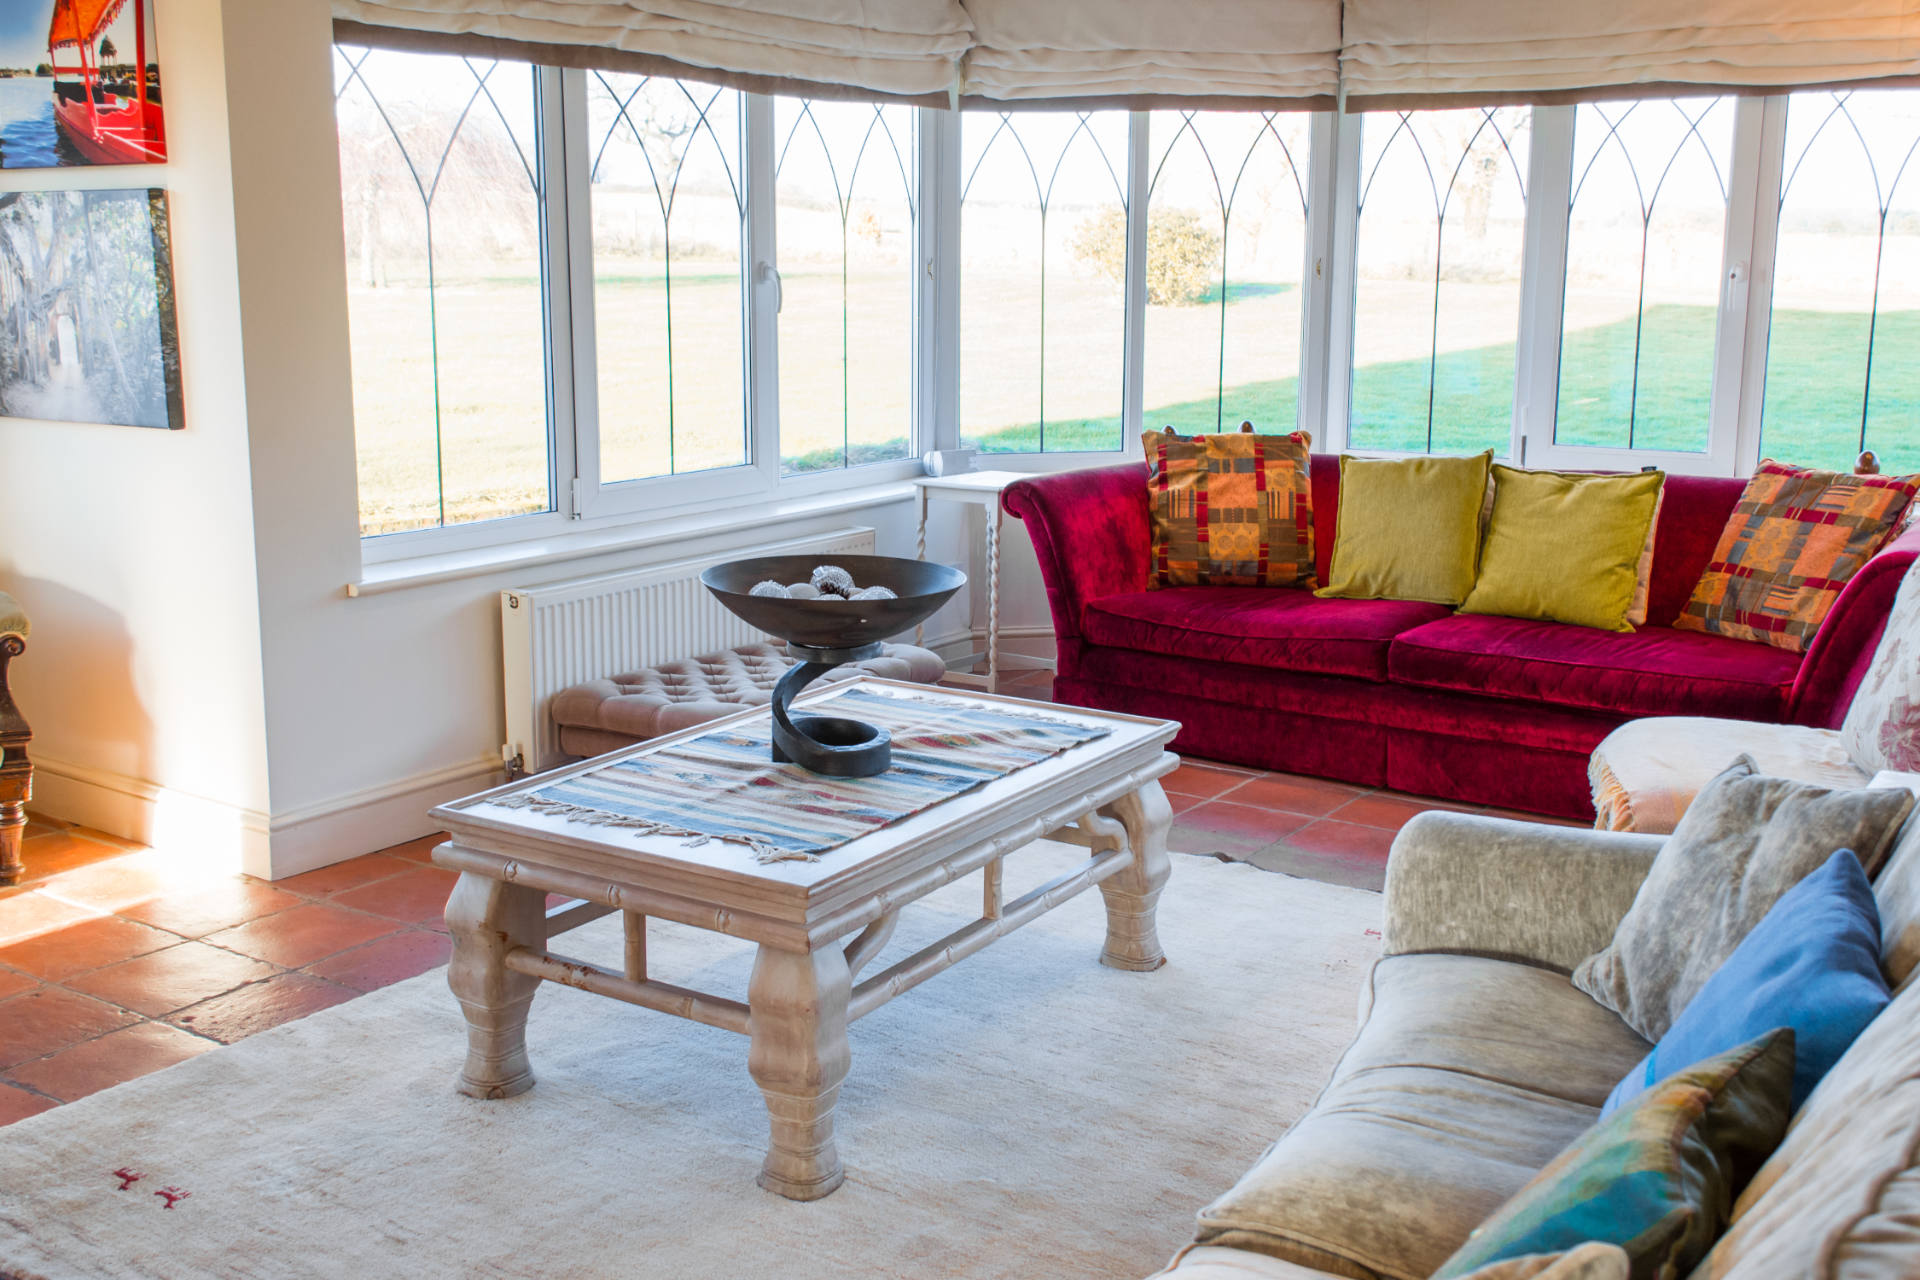 Red sofa and coffee table with surrounding glass windows looking at the garden.